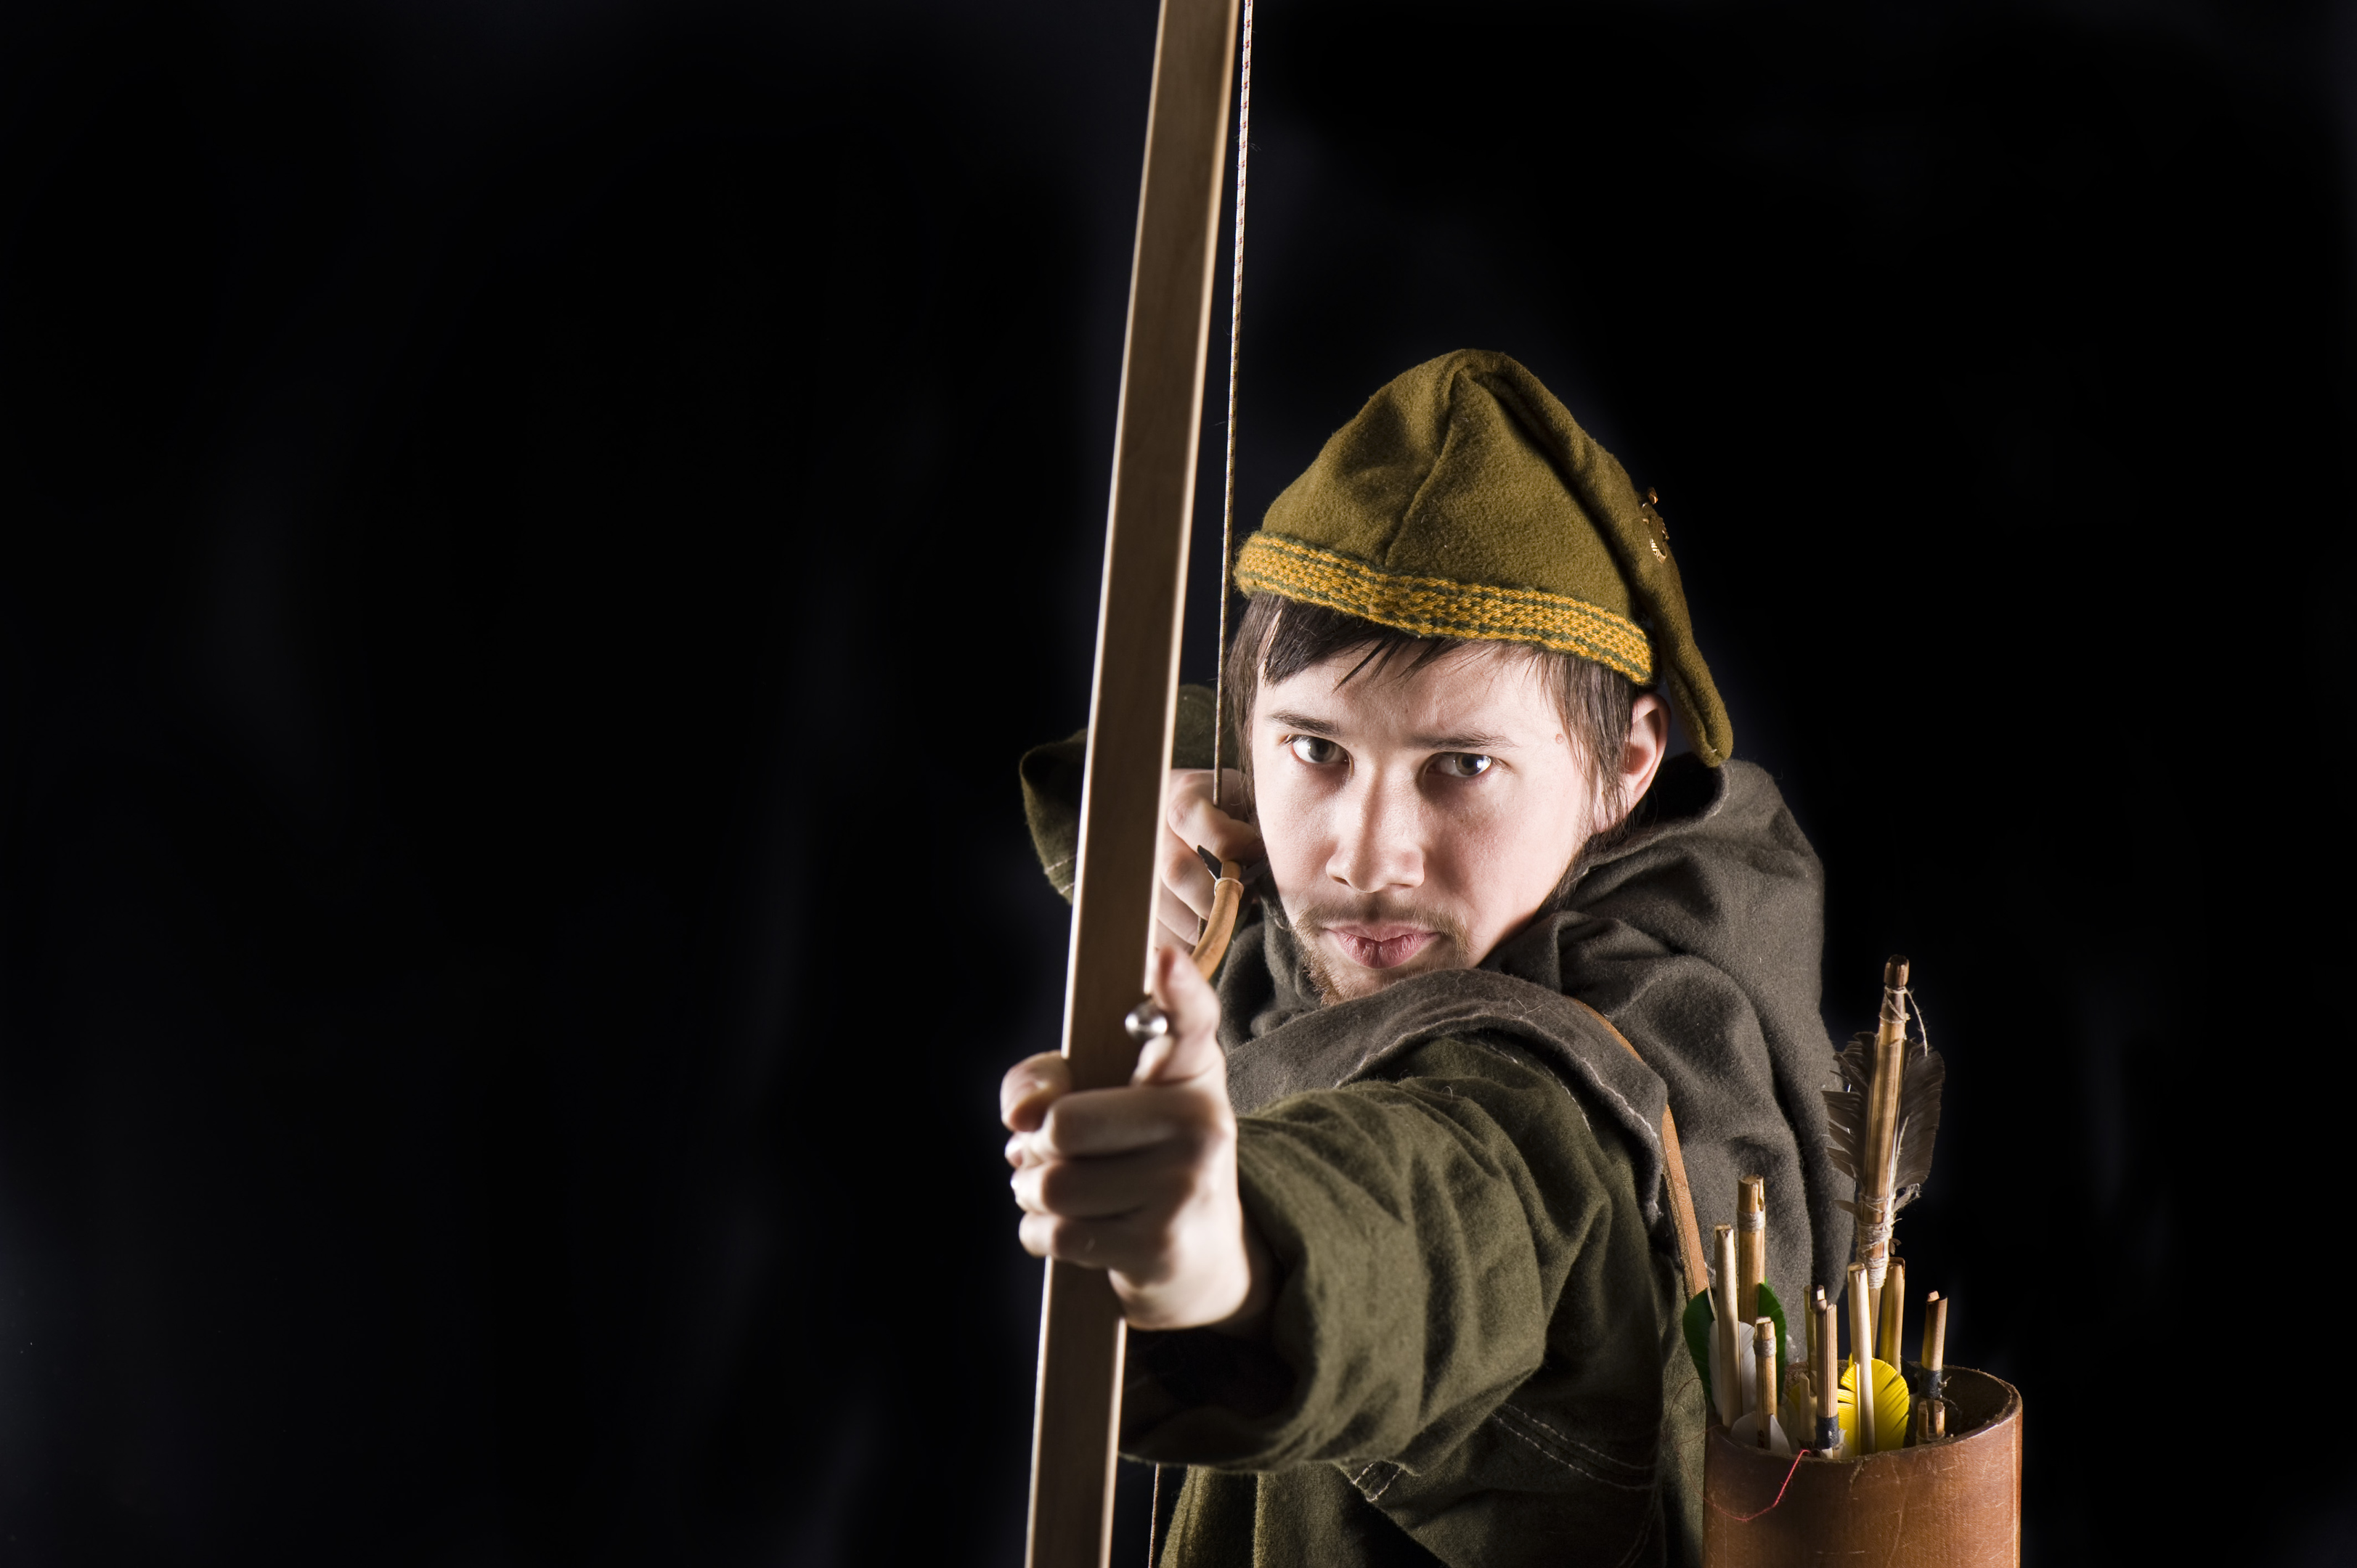 A file photo of an actor dressed in the style of Robin Hood